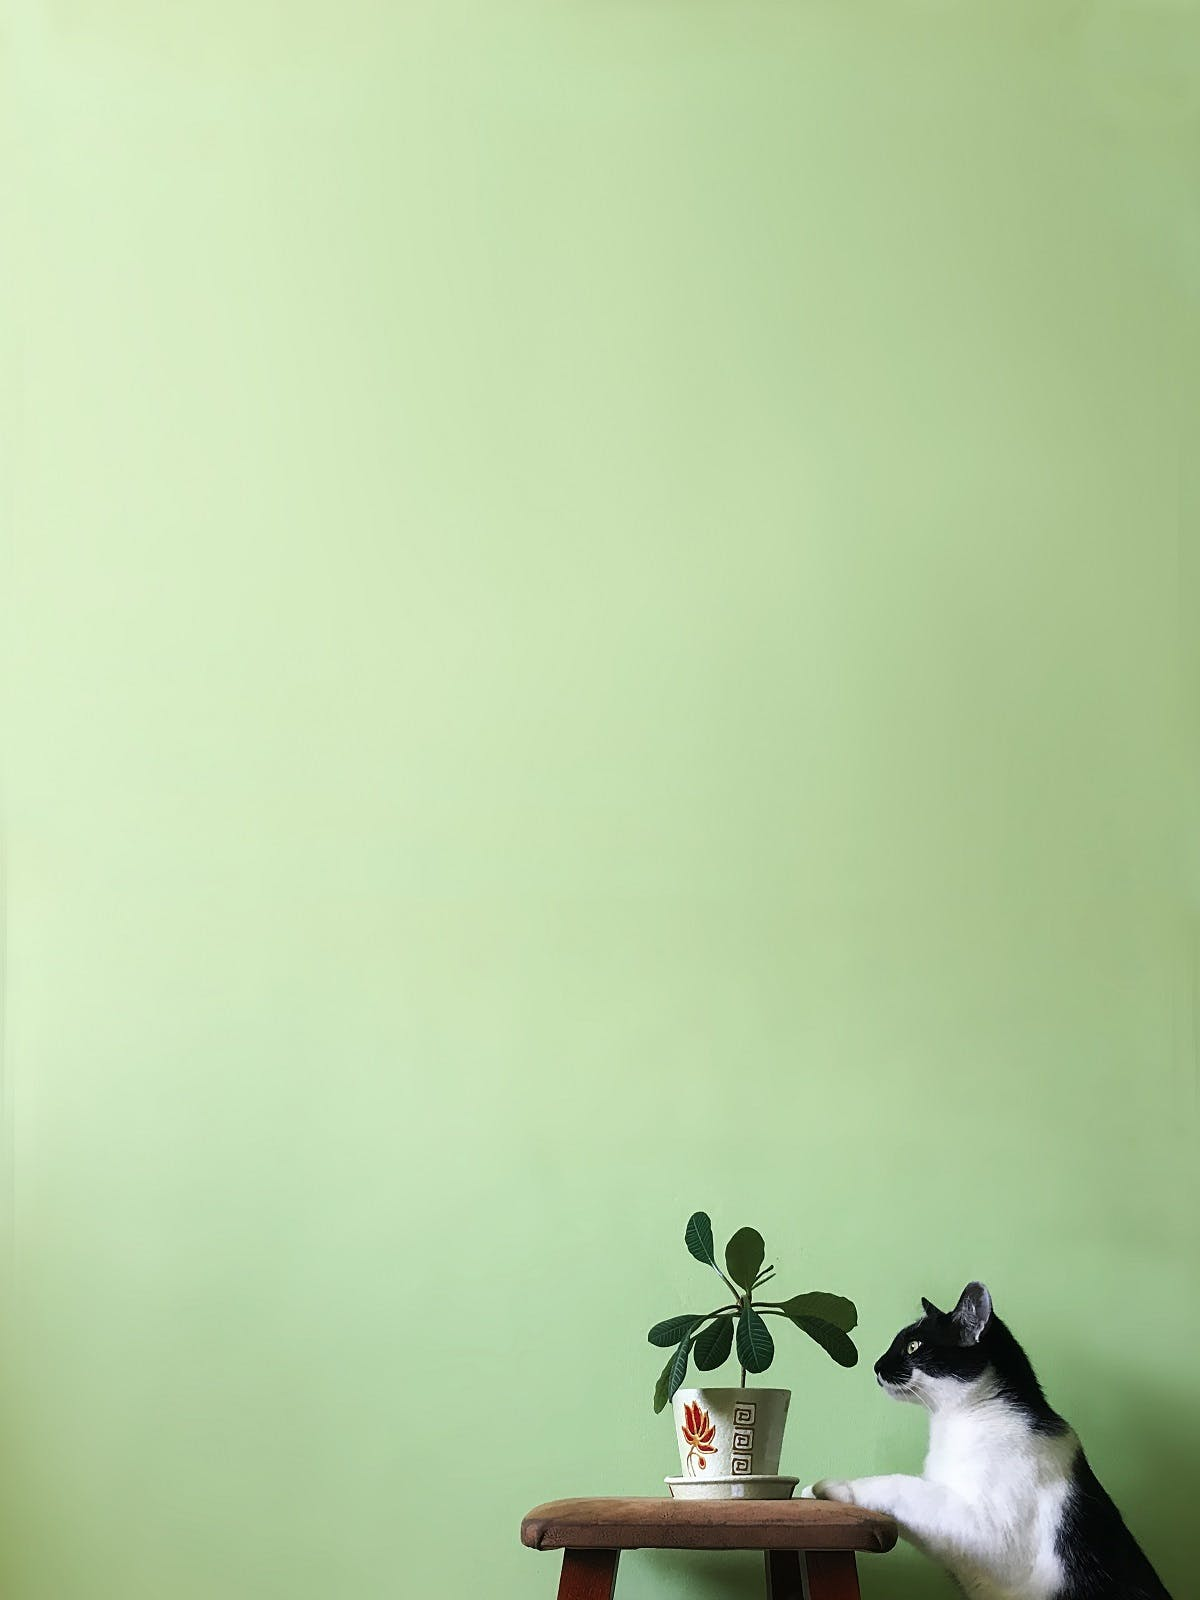 A black and white cat sniffs a potted plant against a bright green wall